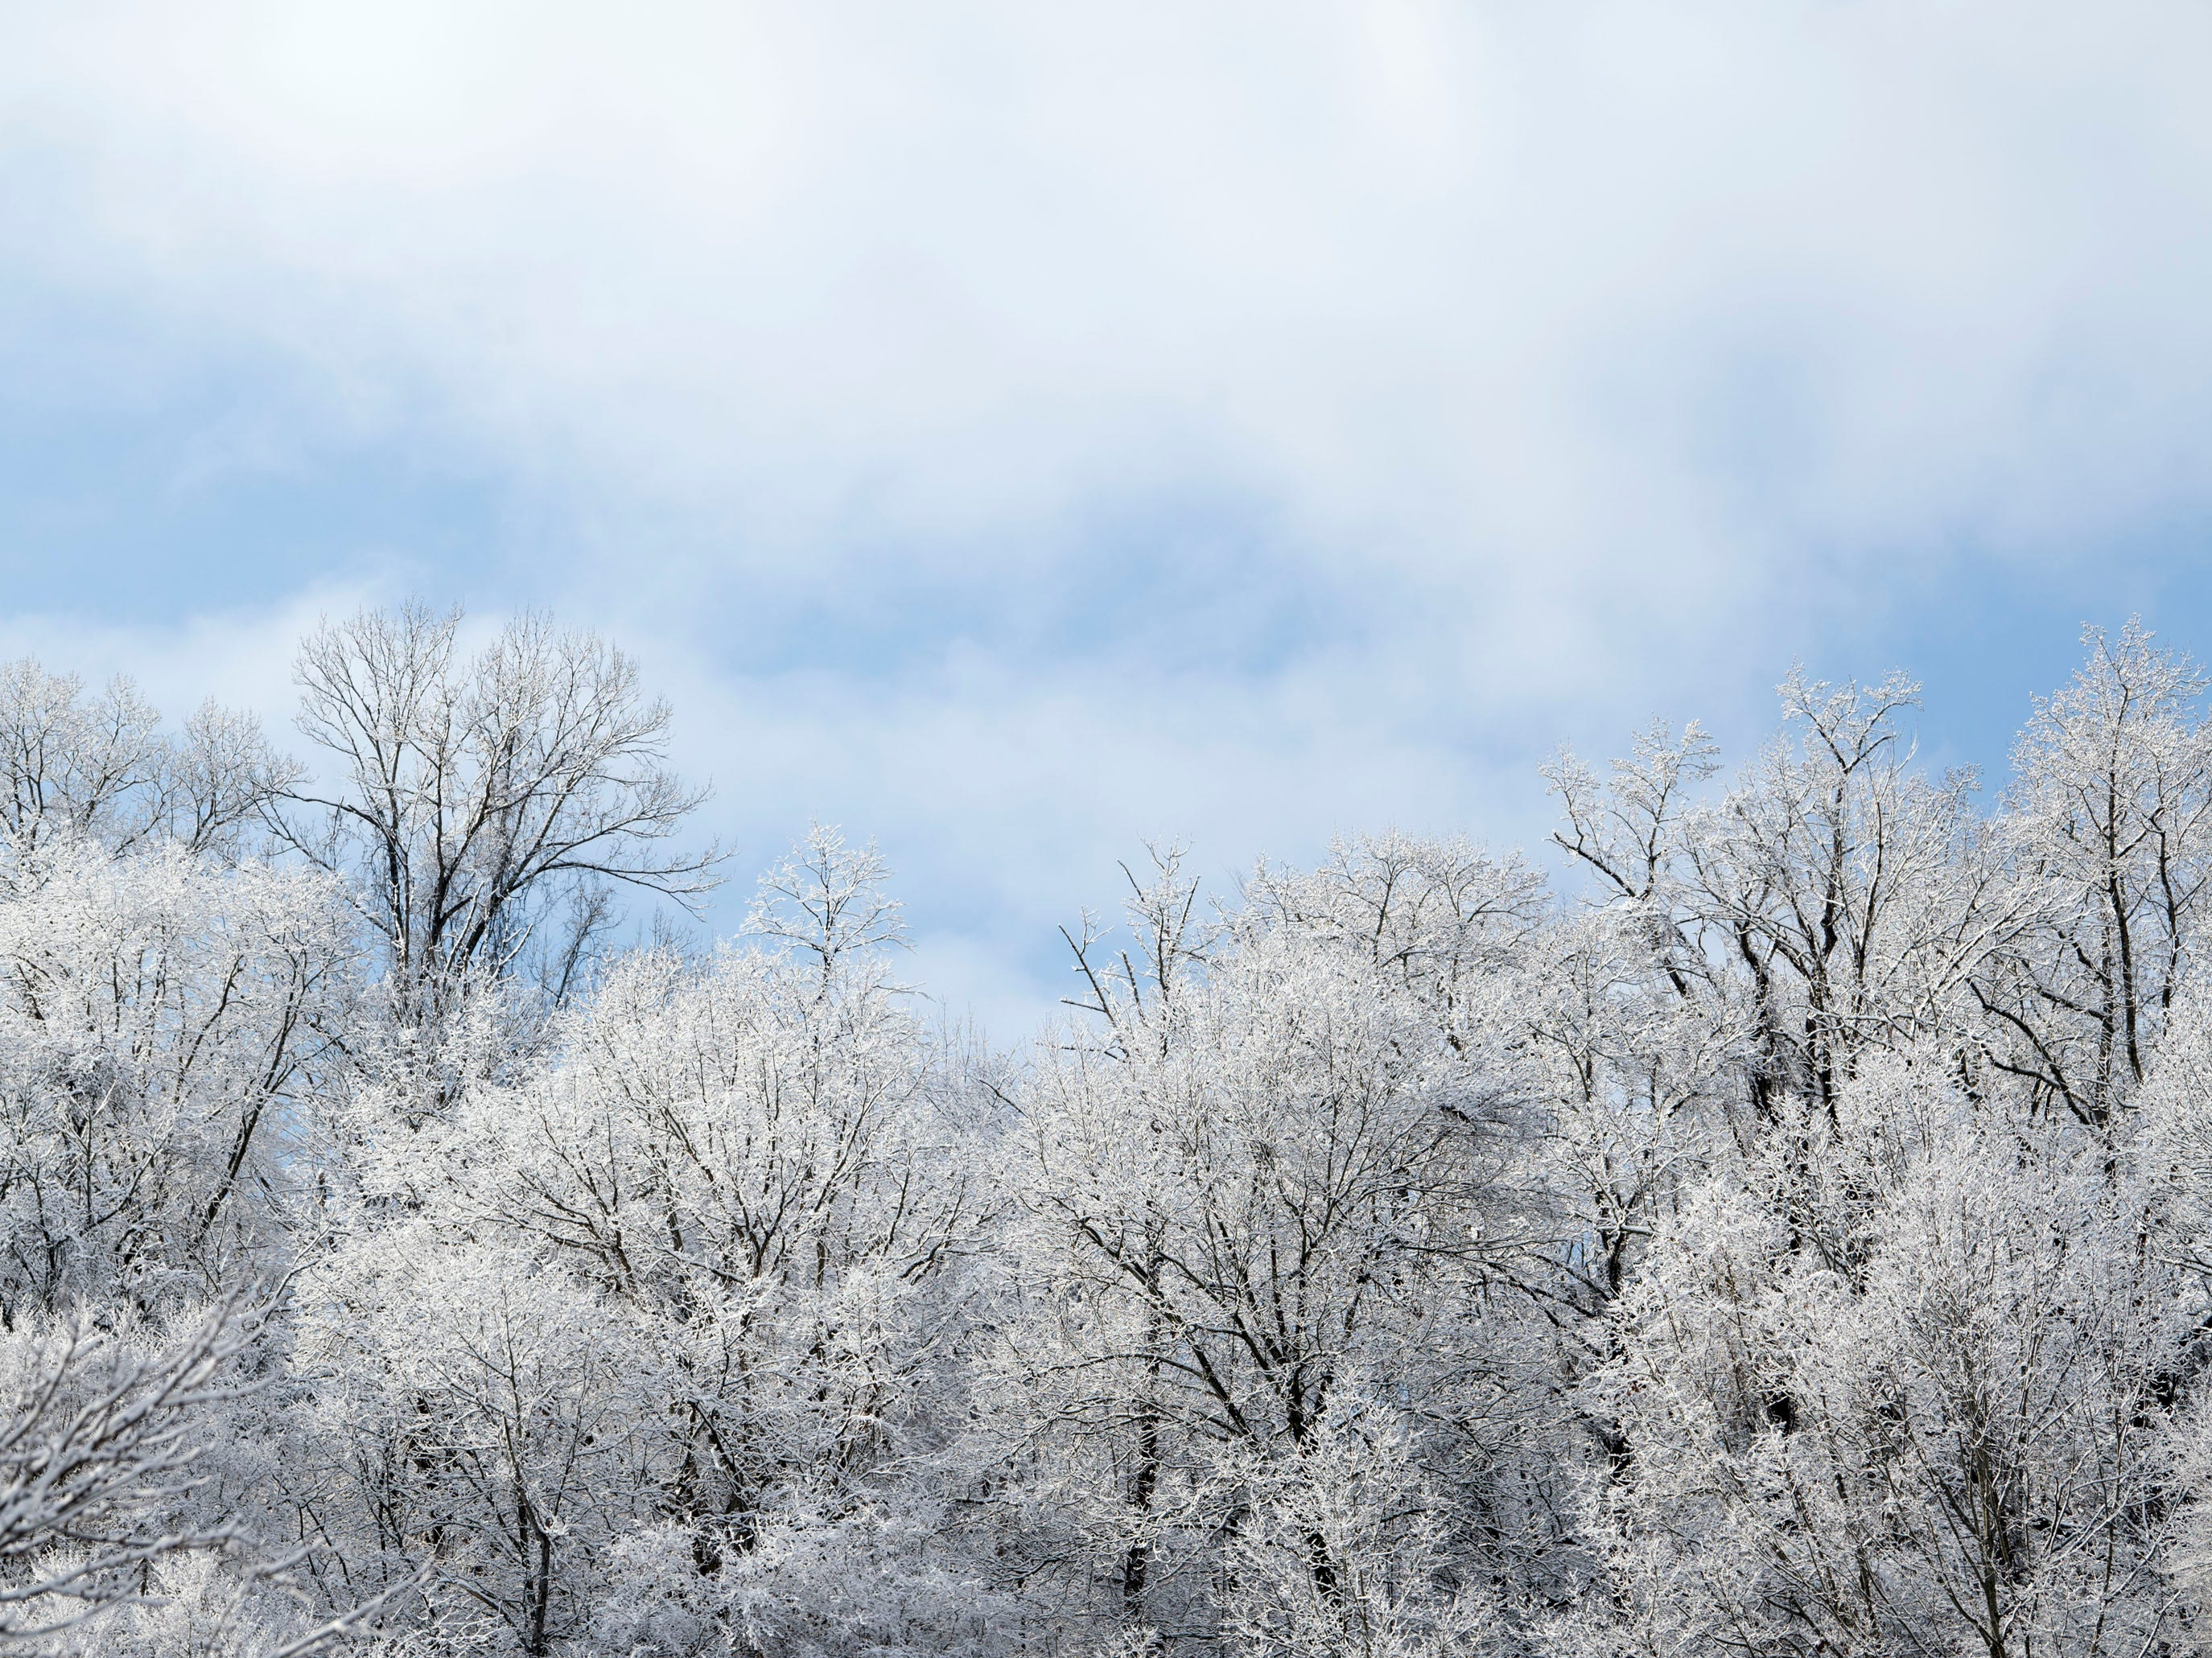 Snow covered treetops in South Knoxville on Tuesday, January 29, 2019.